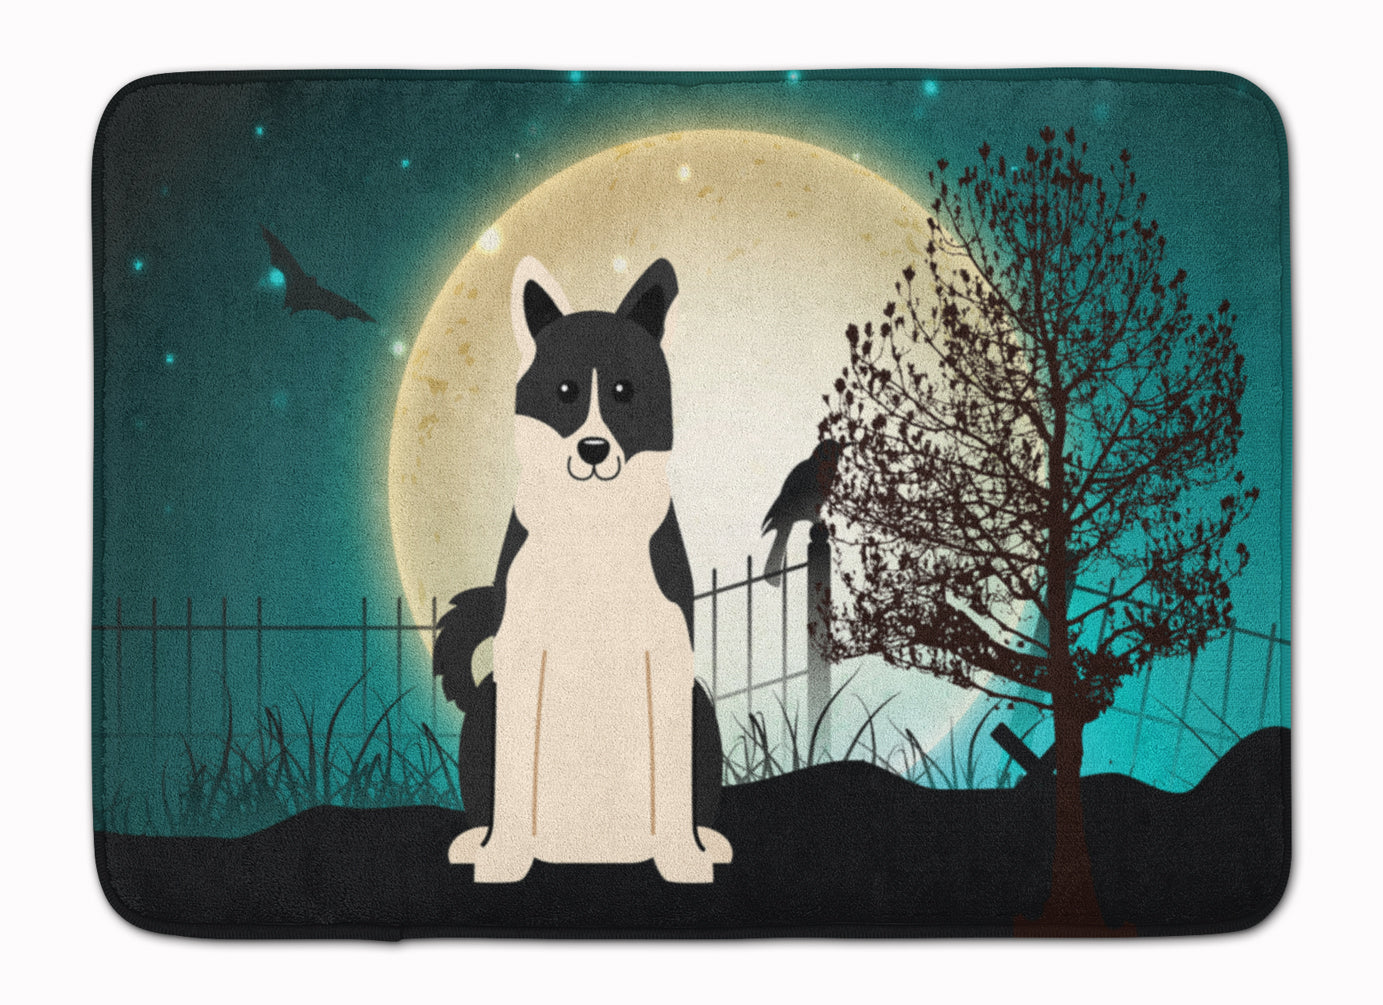 Halloween Scary Russo-European Laika Spitz Machine Washable Memory Foam Mat BB2219RUG by Caroline's Treasures